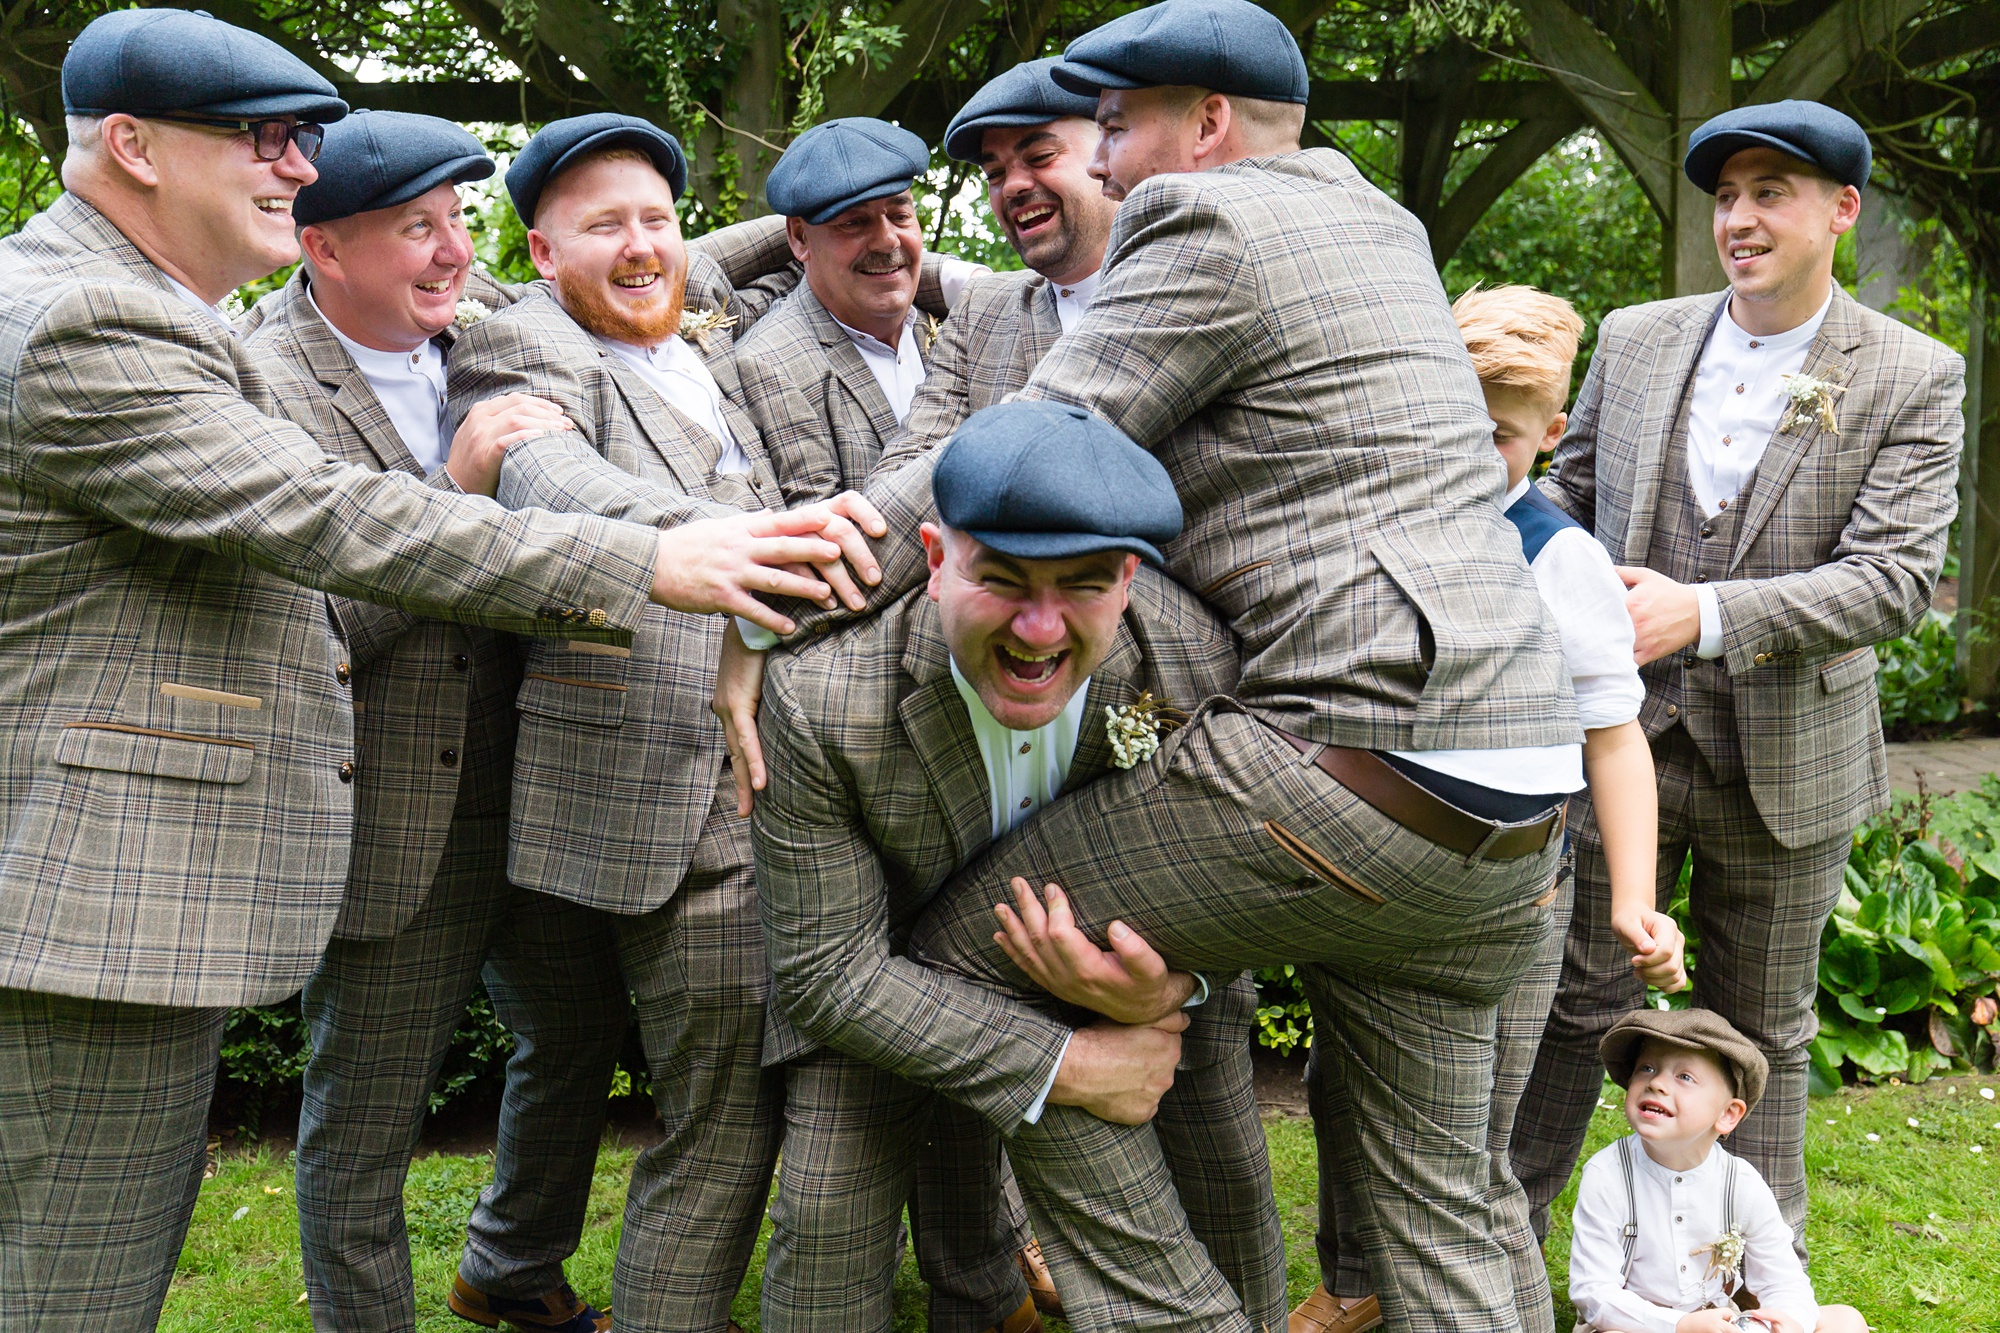 Groomsmen having fun and laughing when taking group photos at Sandburn Hall wedding.